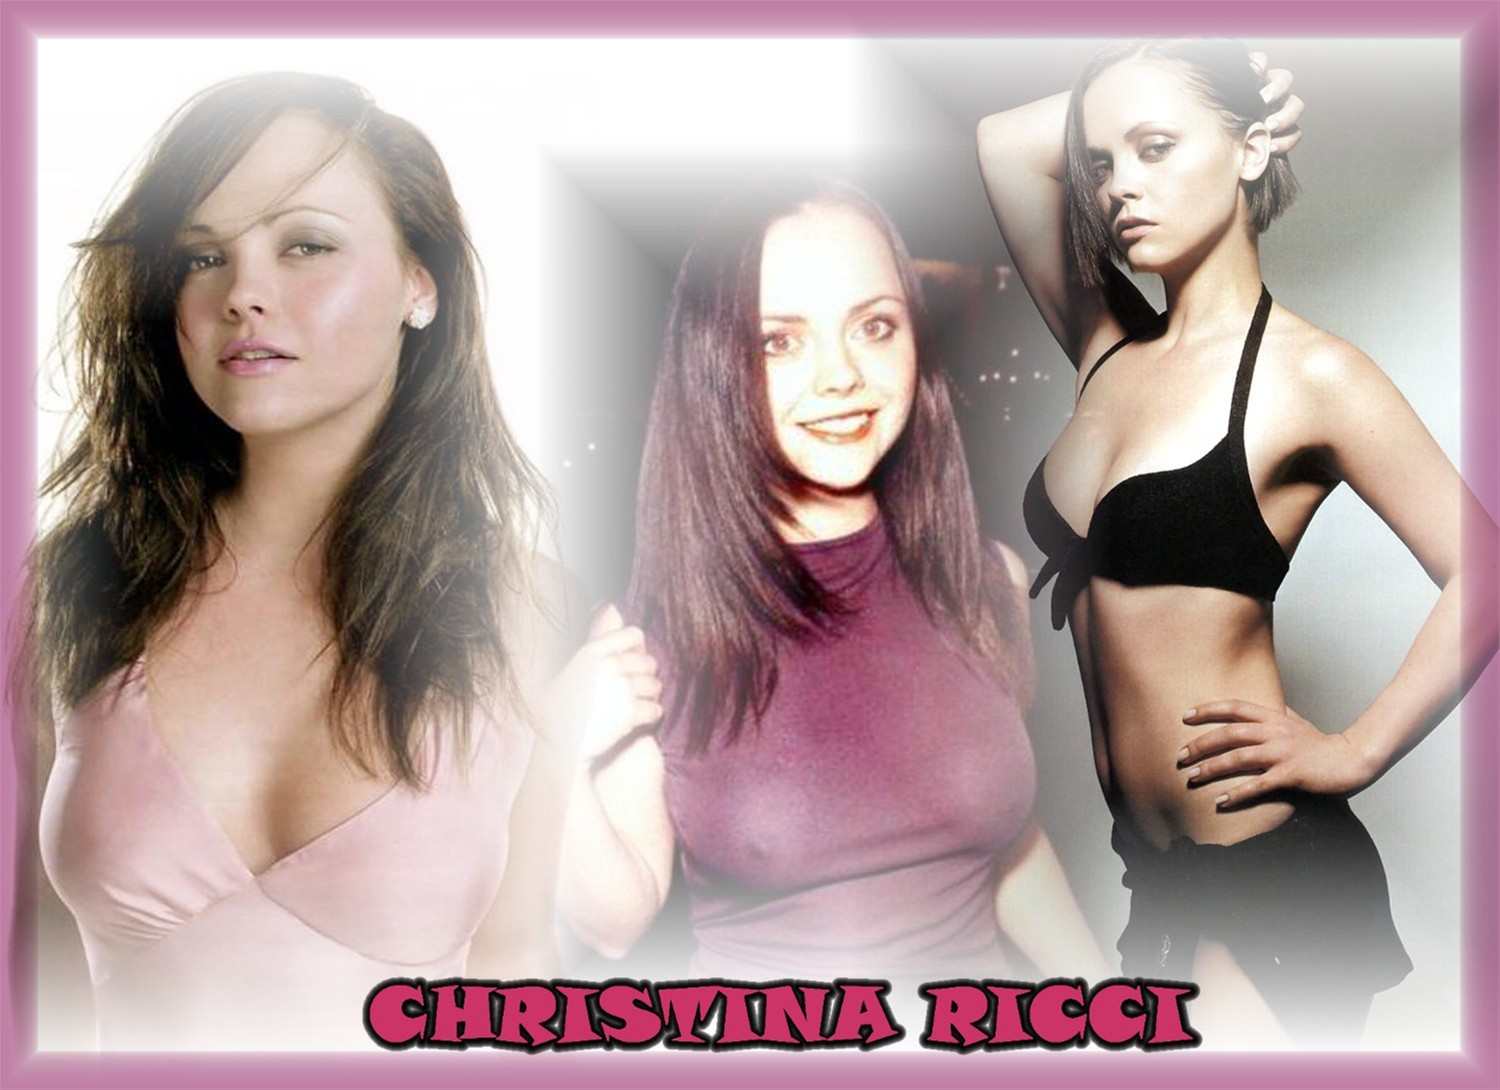 You are viewing the Christina Ricci wallpaper named Christina ricci 14.